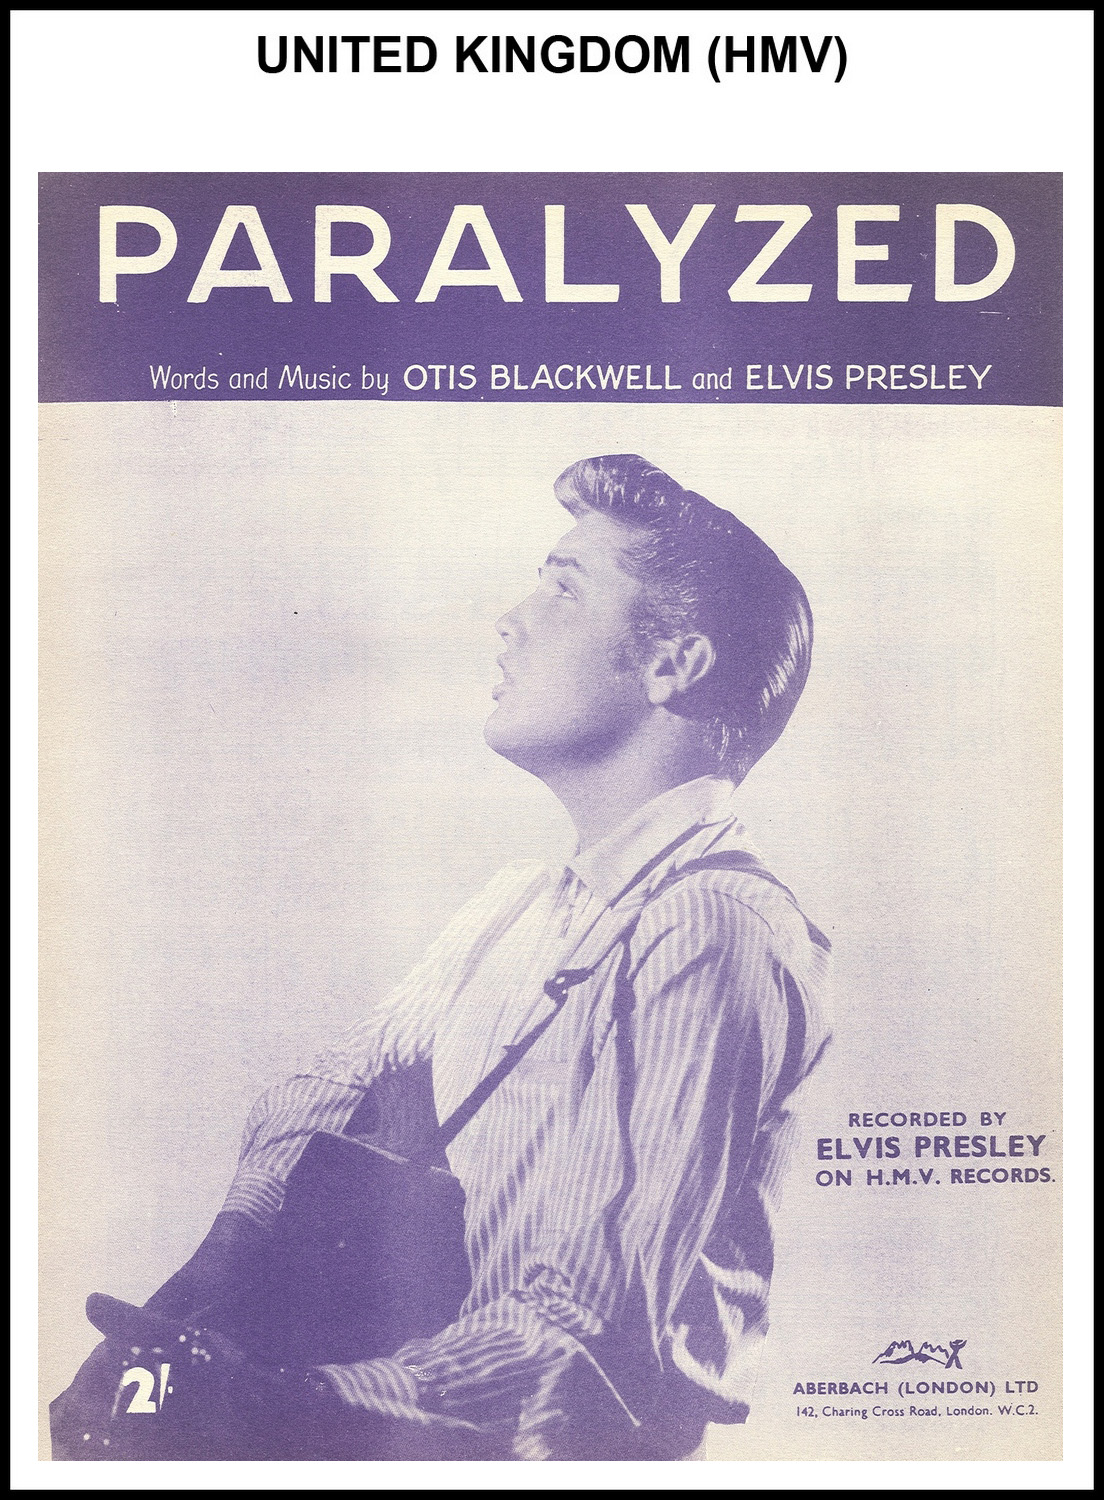 1956 - Paralyzed (UK, HMV) (CHRIS GILES COLLECTION)